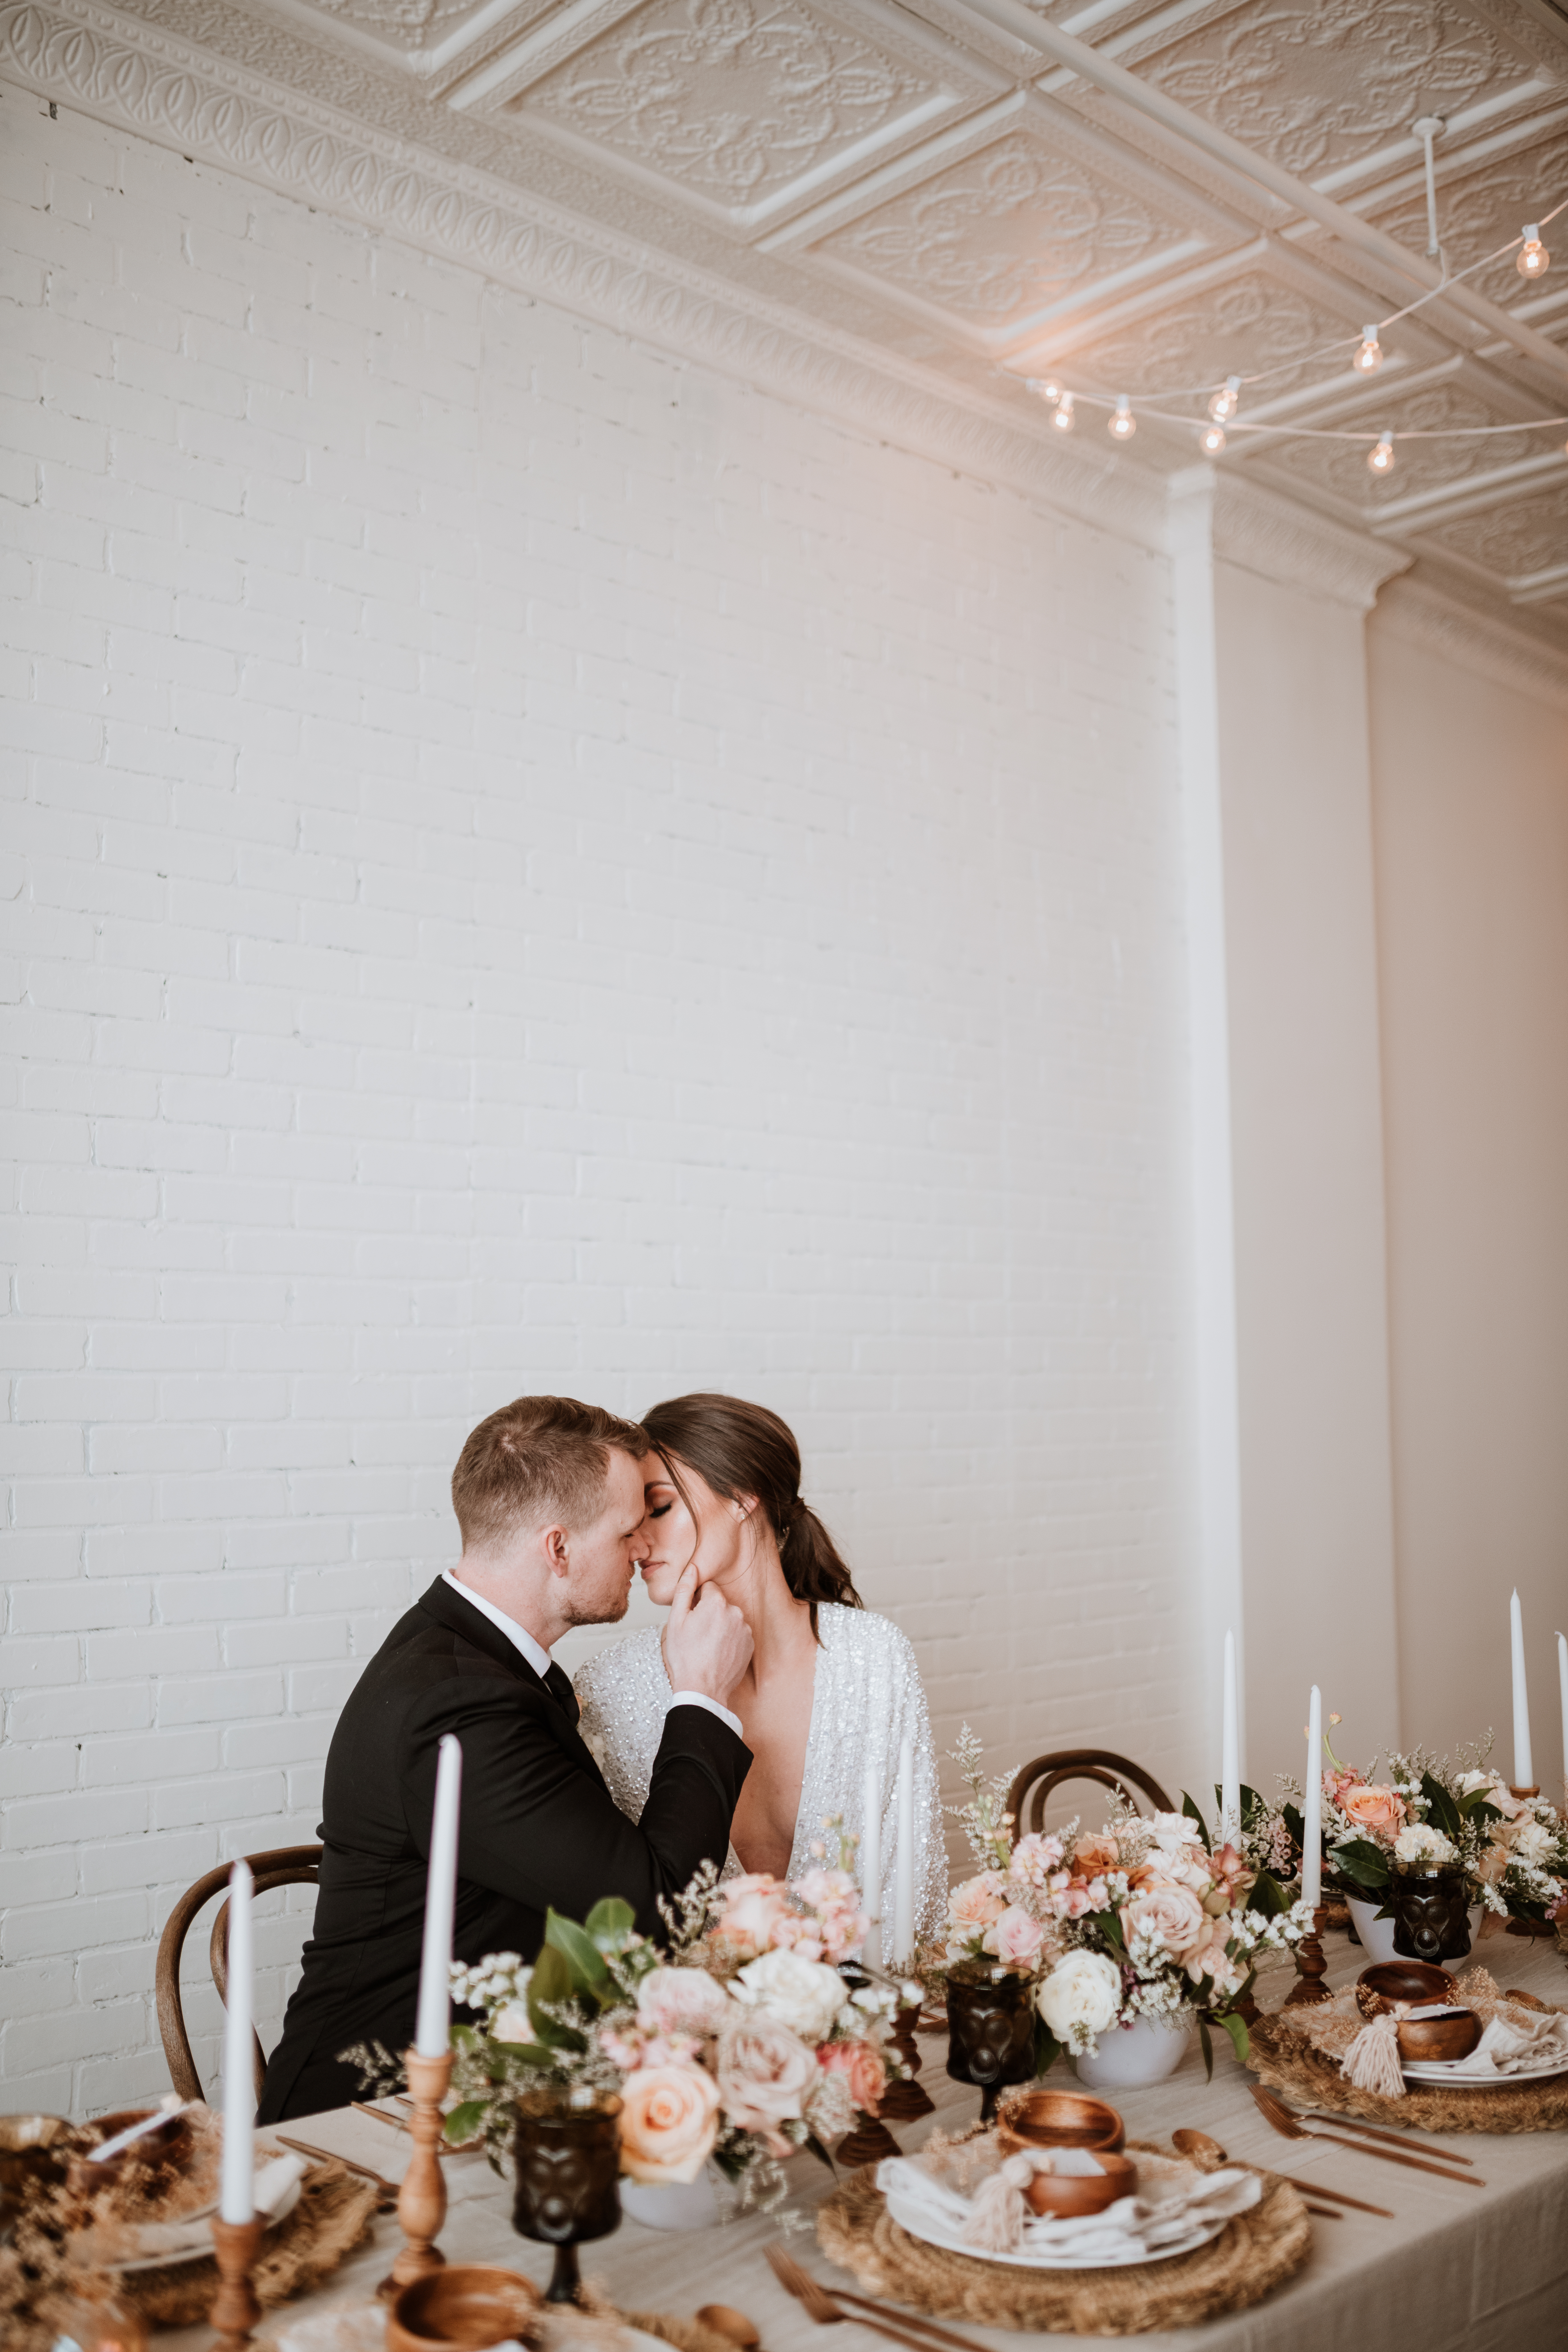 StyledWithLoveShootout-DowntownElopement-57